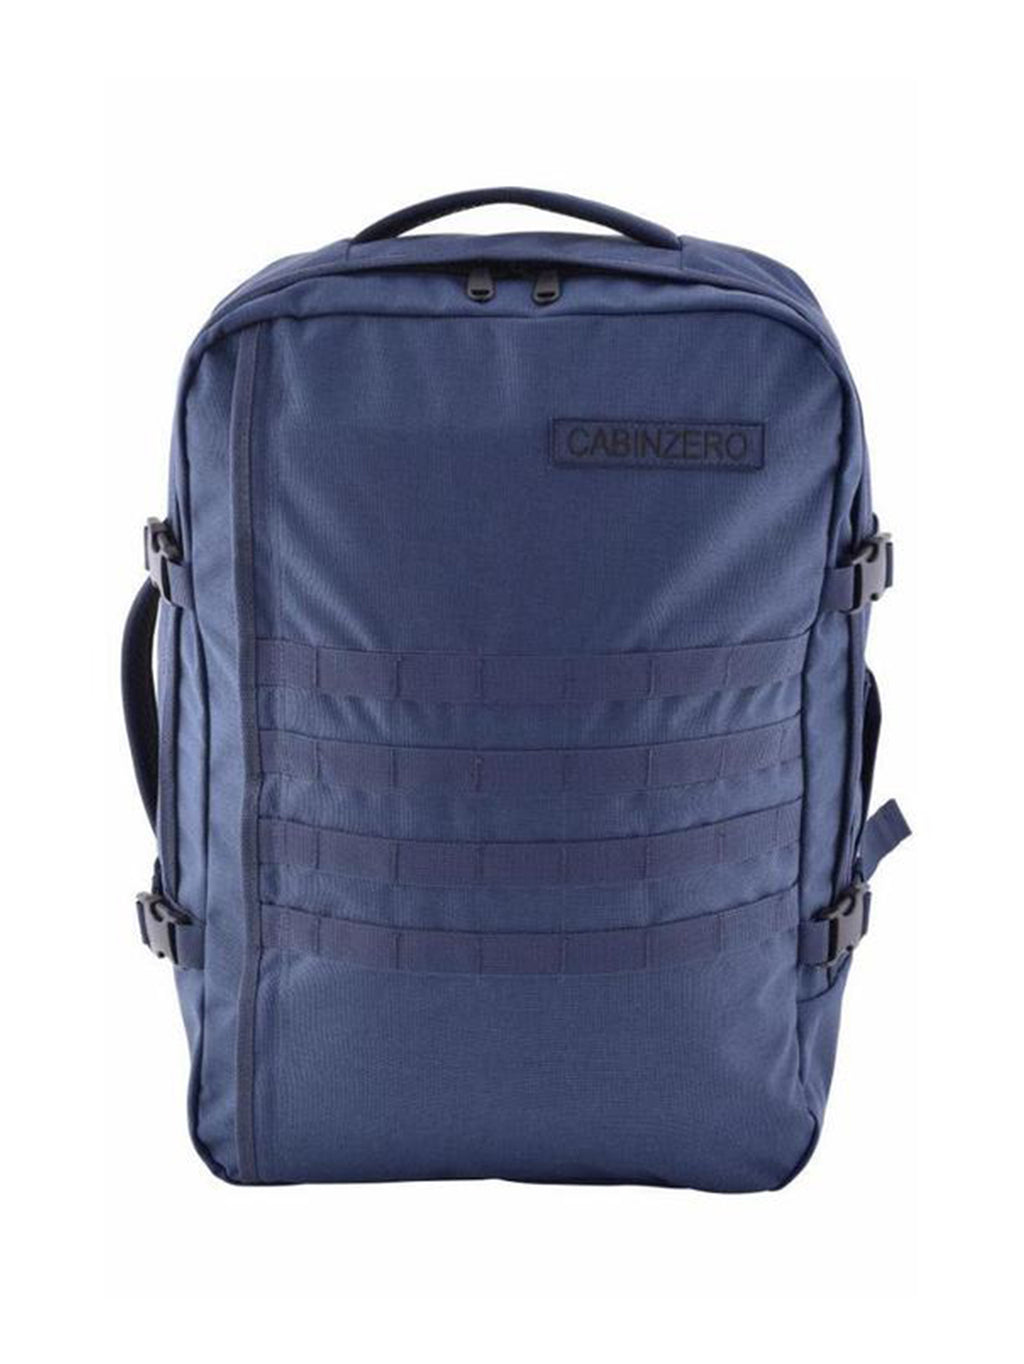 Cabinzero Military 44L in Navy Color - This Is For Him